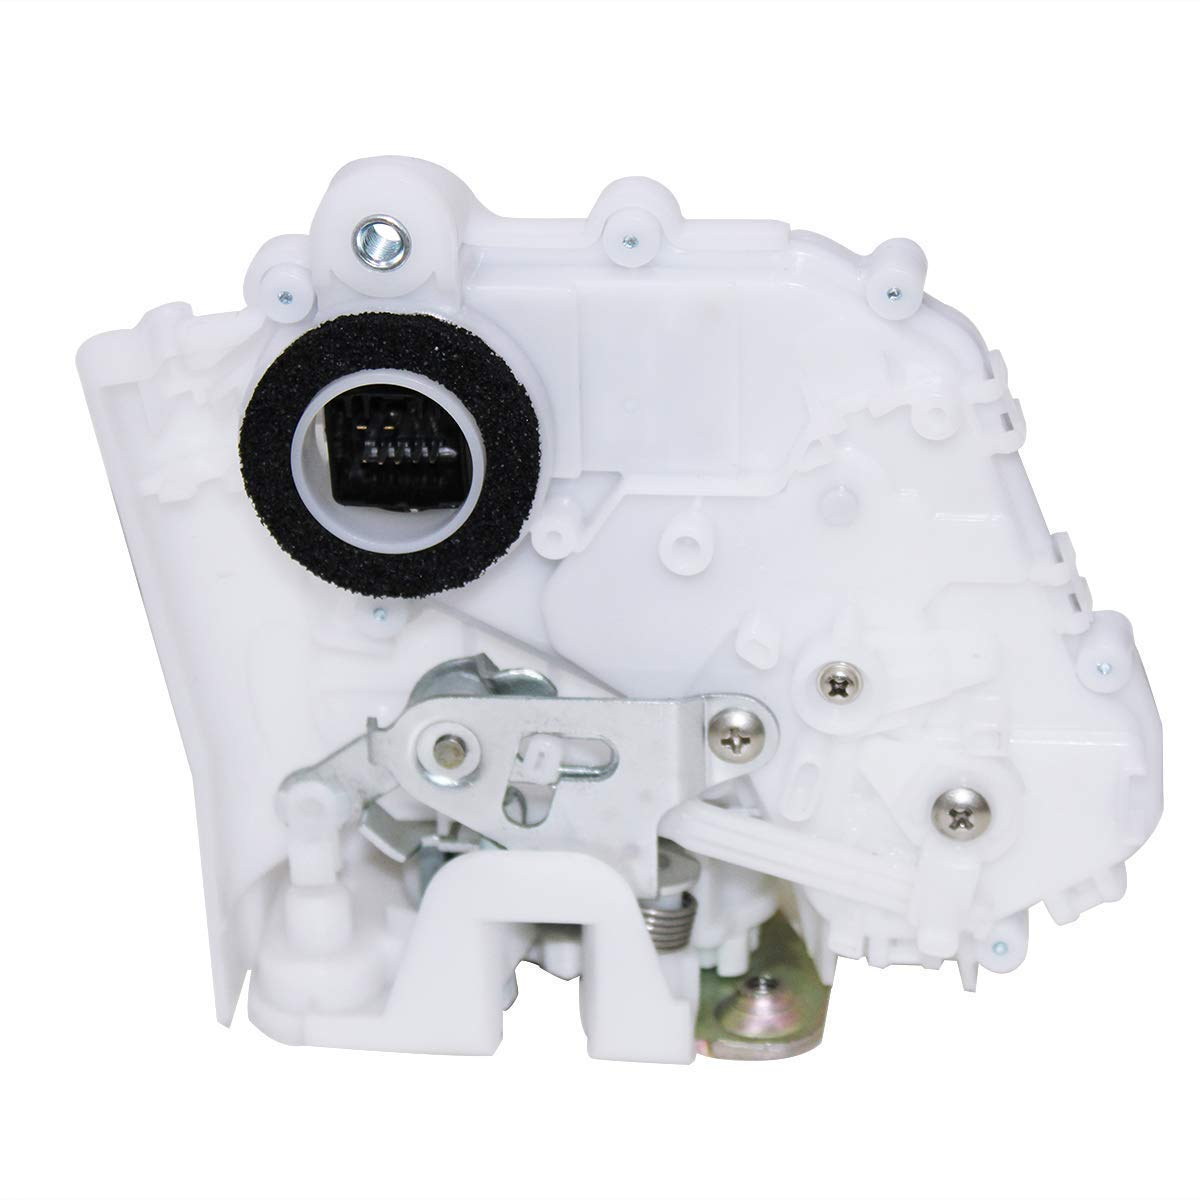 Door Latch & Lock Actuator Assembly - Rear Driver Side Compatible for 2007-2011 Honda CRV 72650-SWA-A01 Partschoice